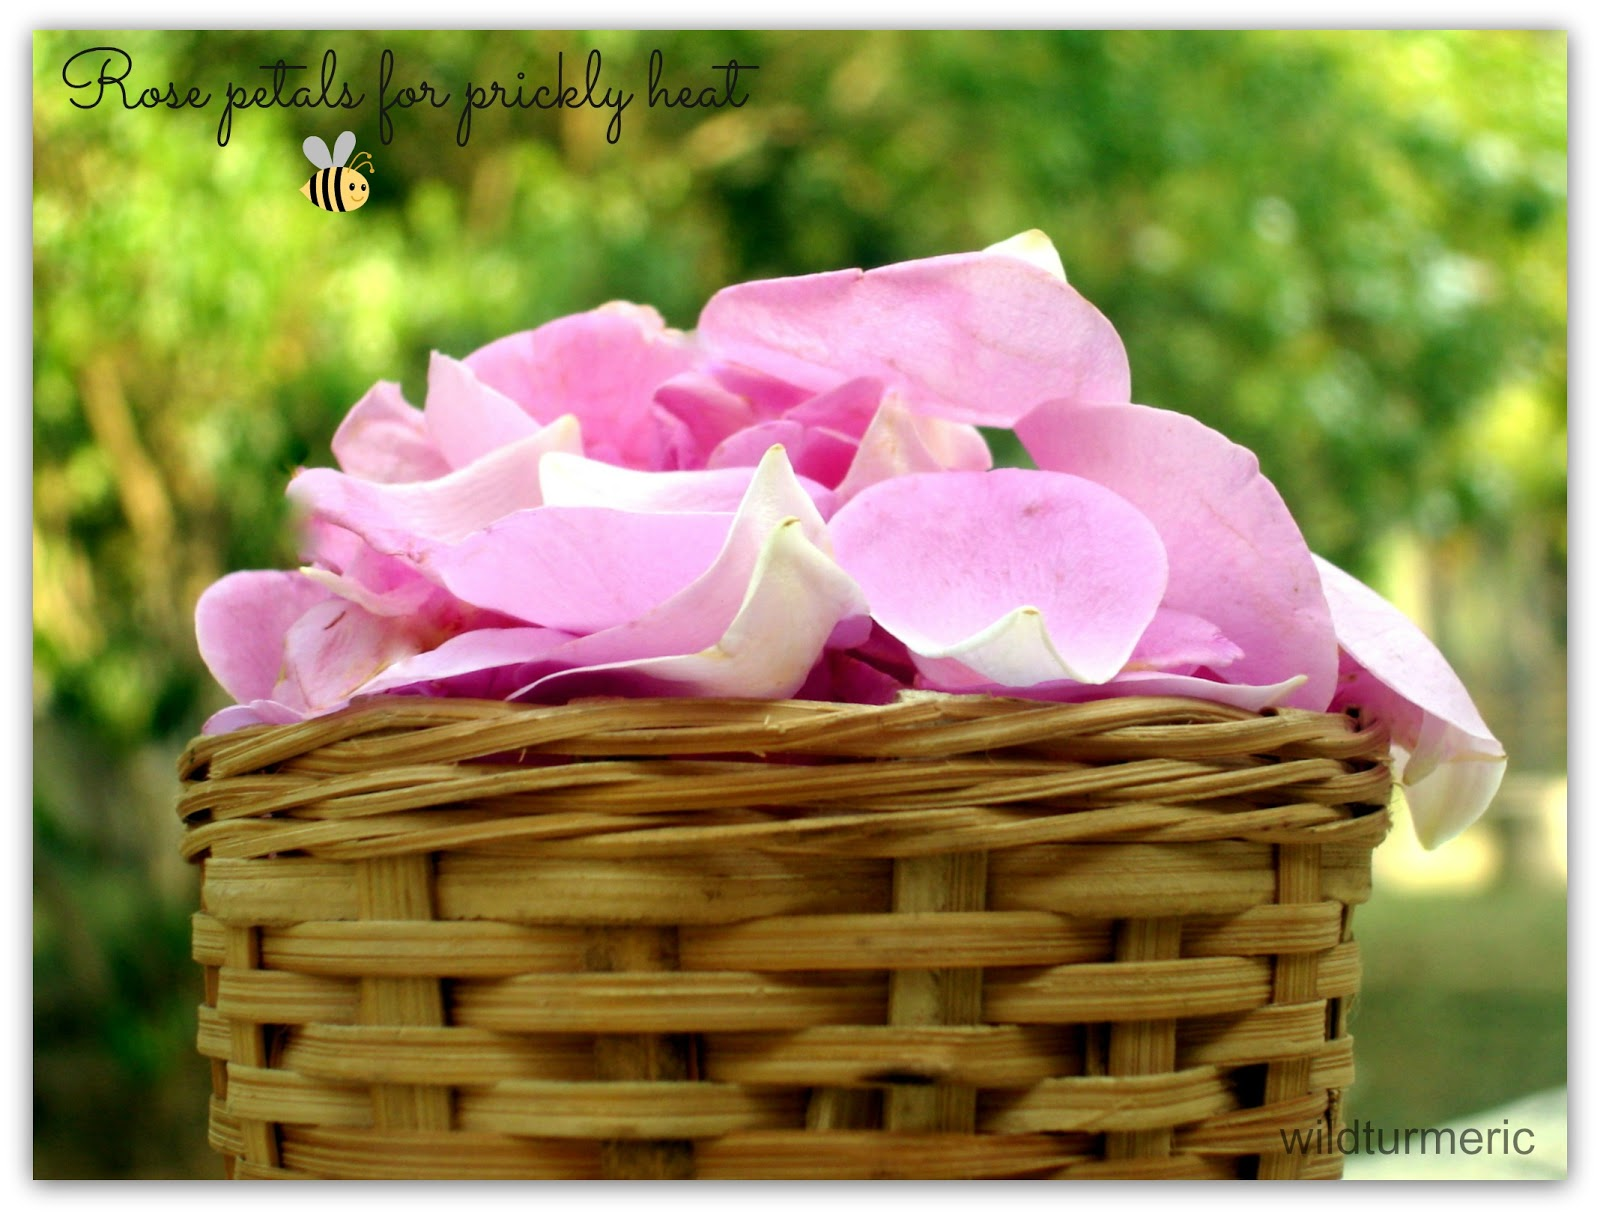 5 Amazing Benefits & Uses Of Rose Petals For Skin, Hair, Lips & Health